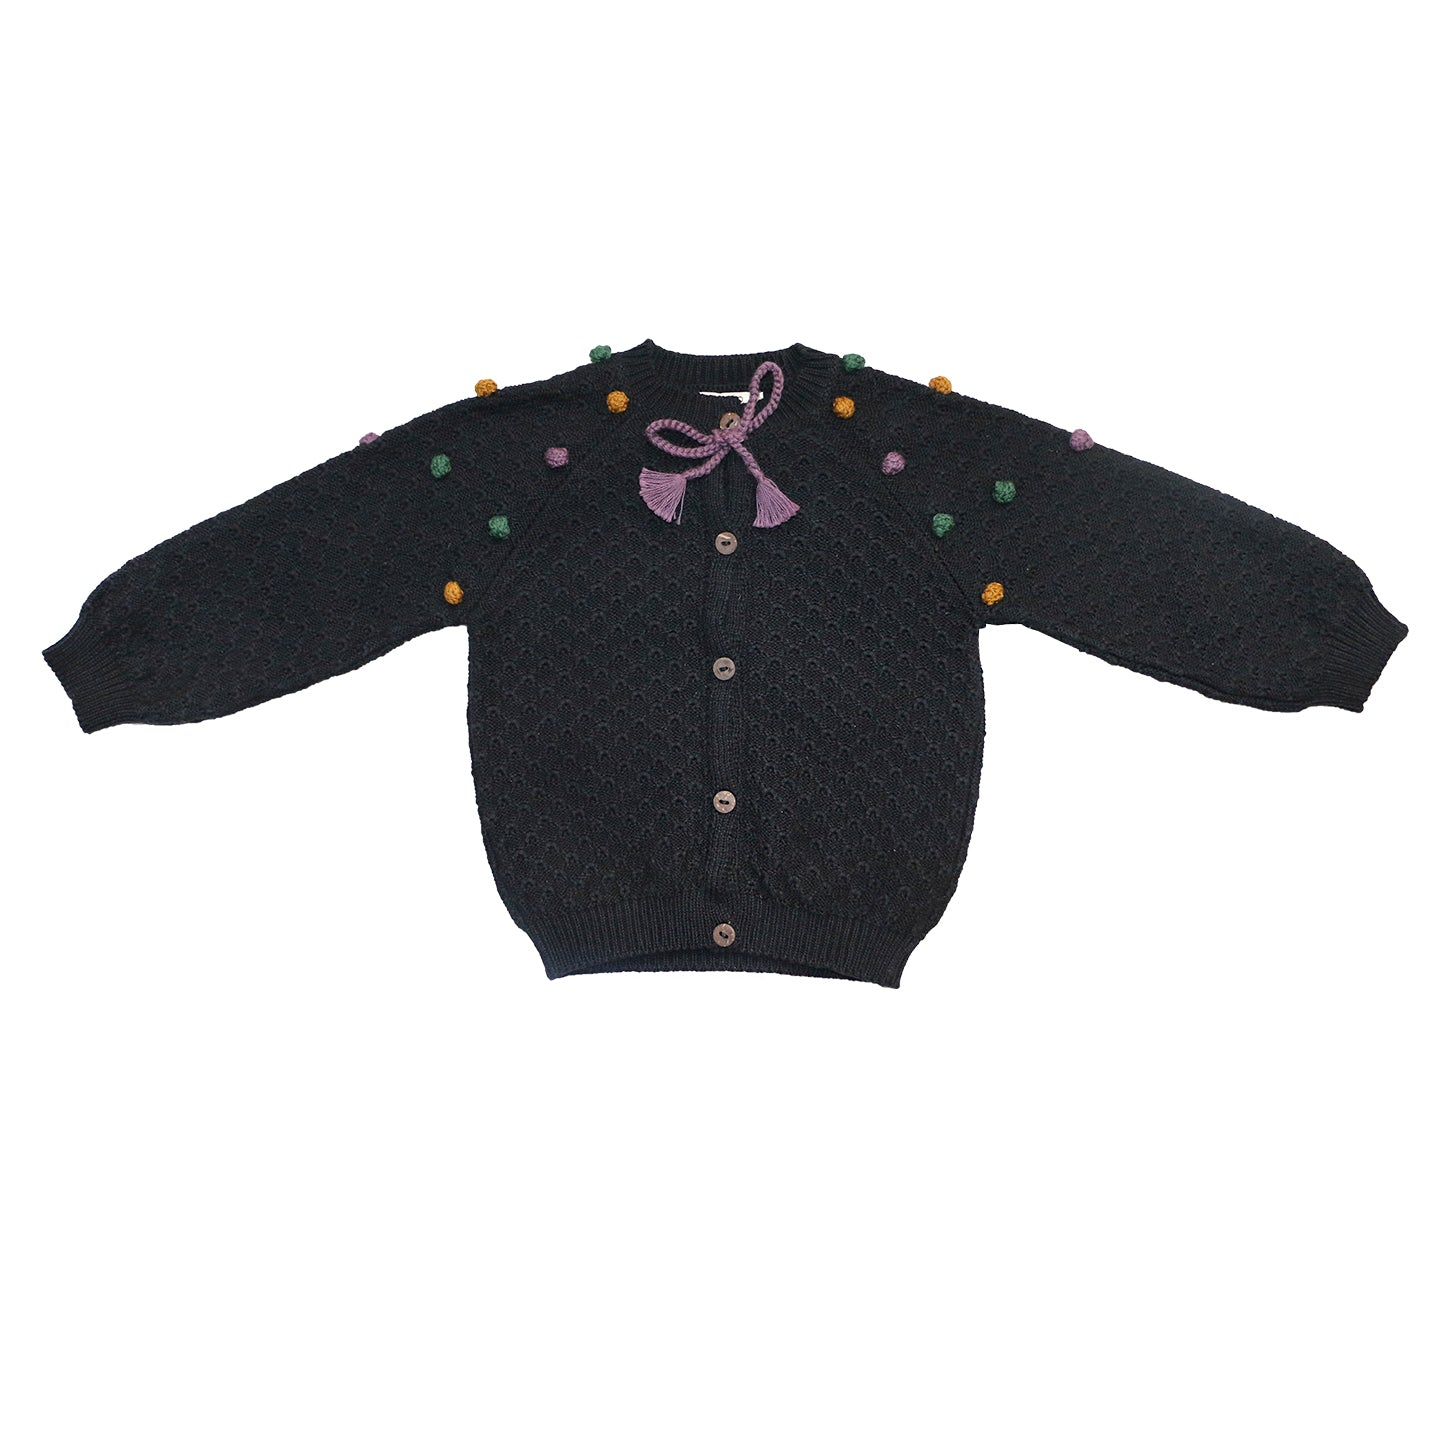 Load image into Gallery viewer, Coco Au Lait BABY BLACK FANTASY CARDIGAN Sweater Caviar